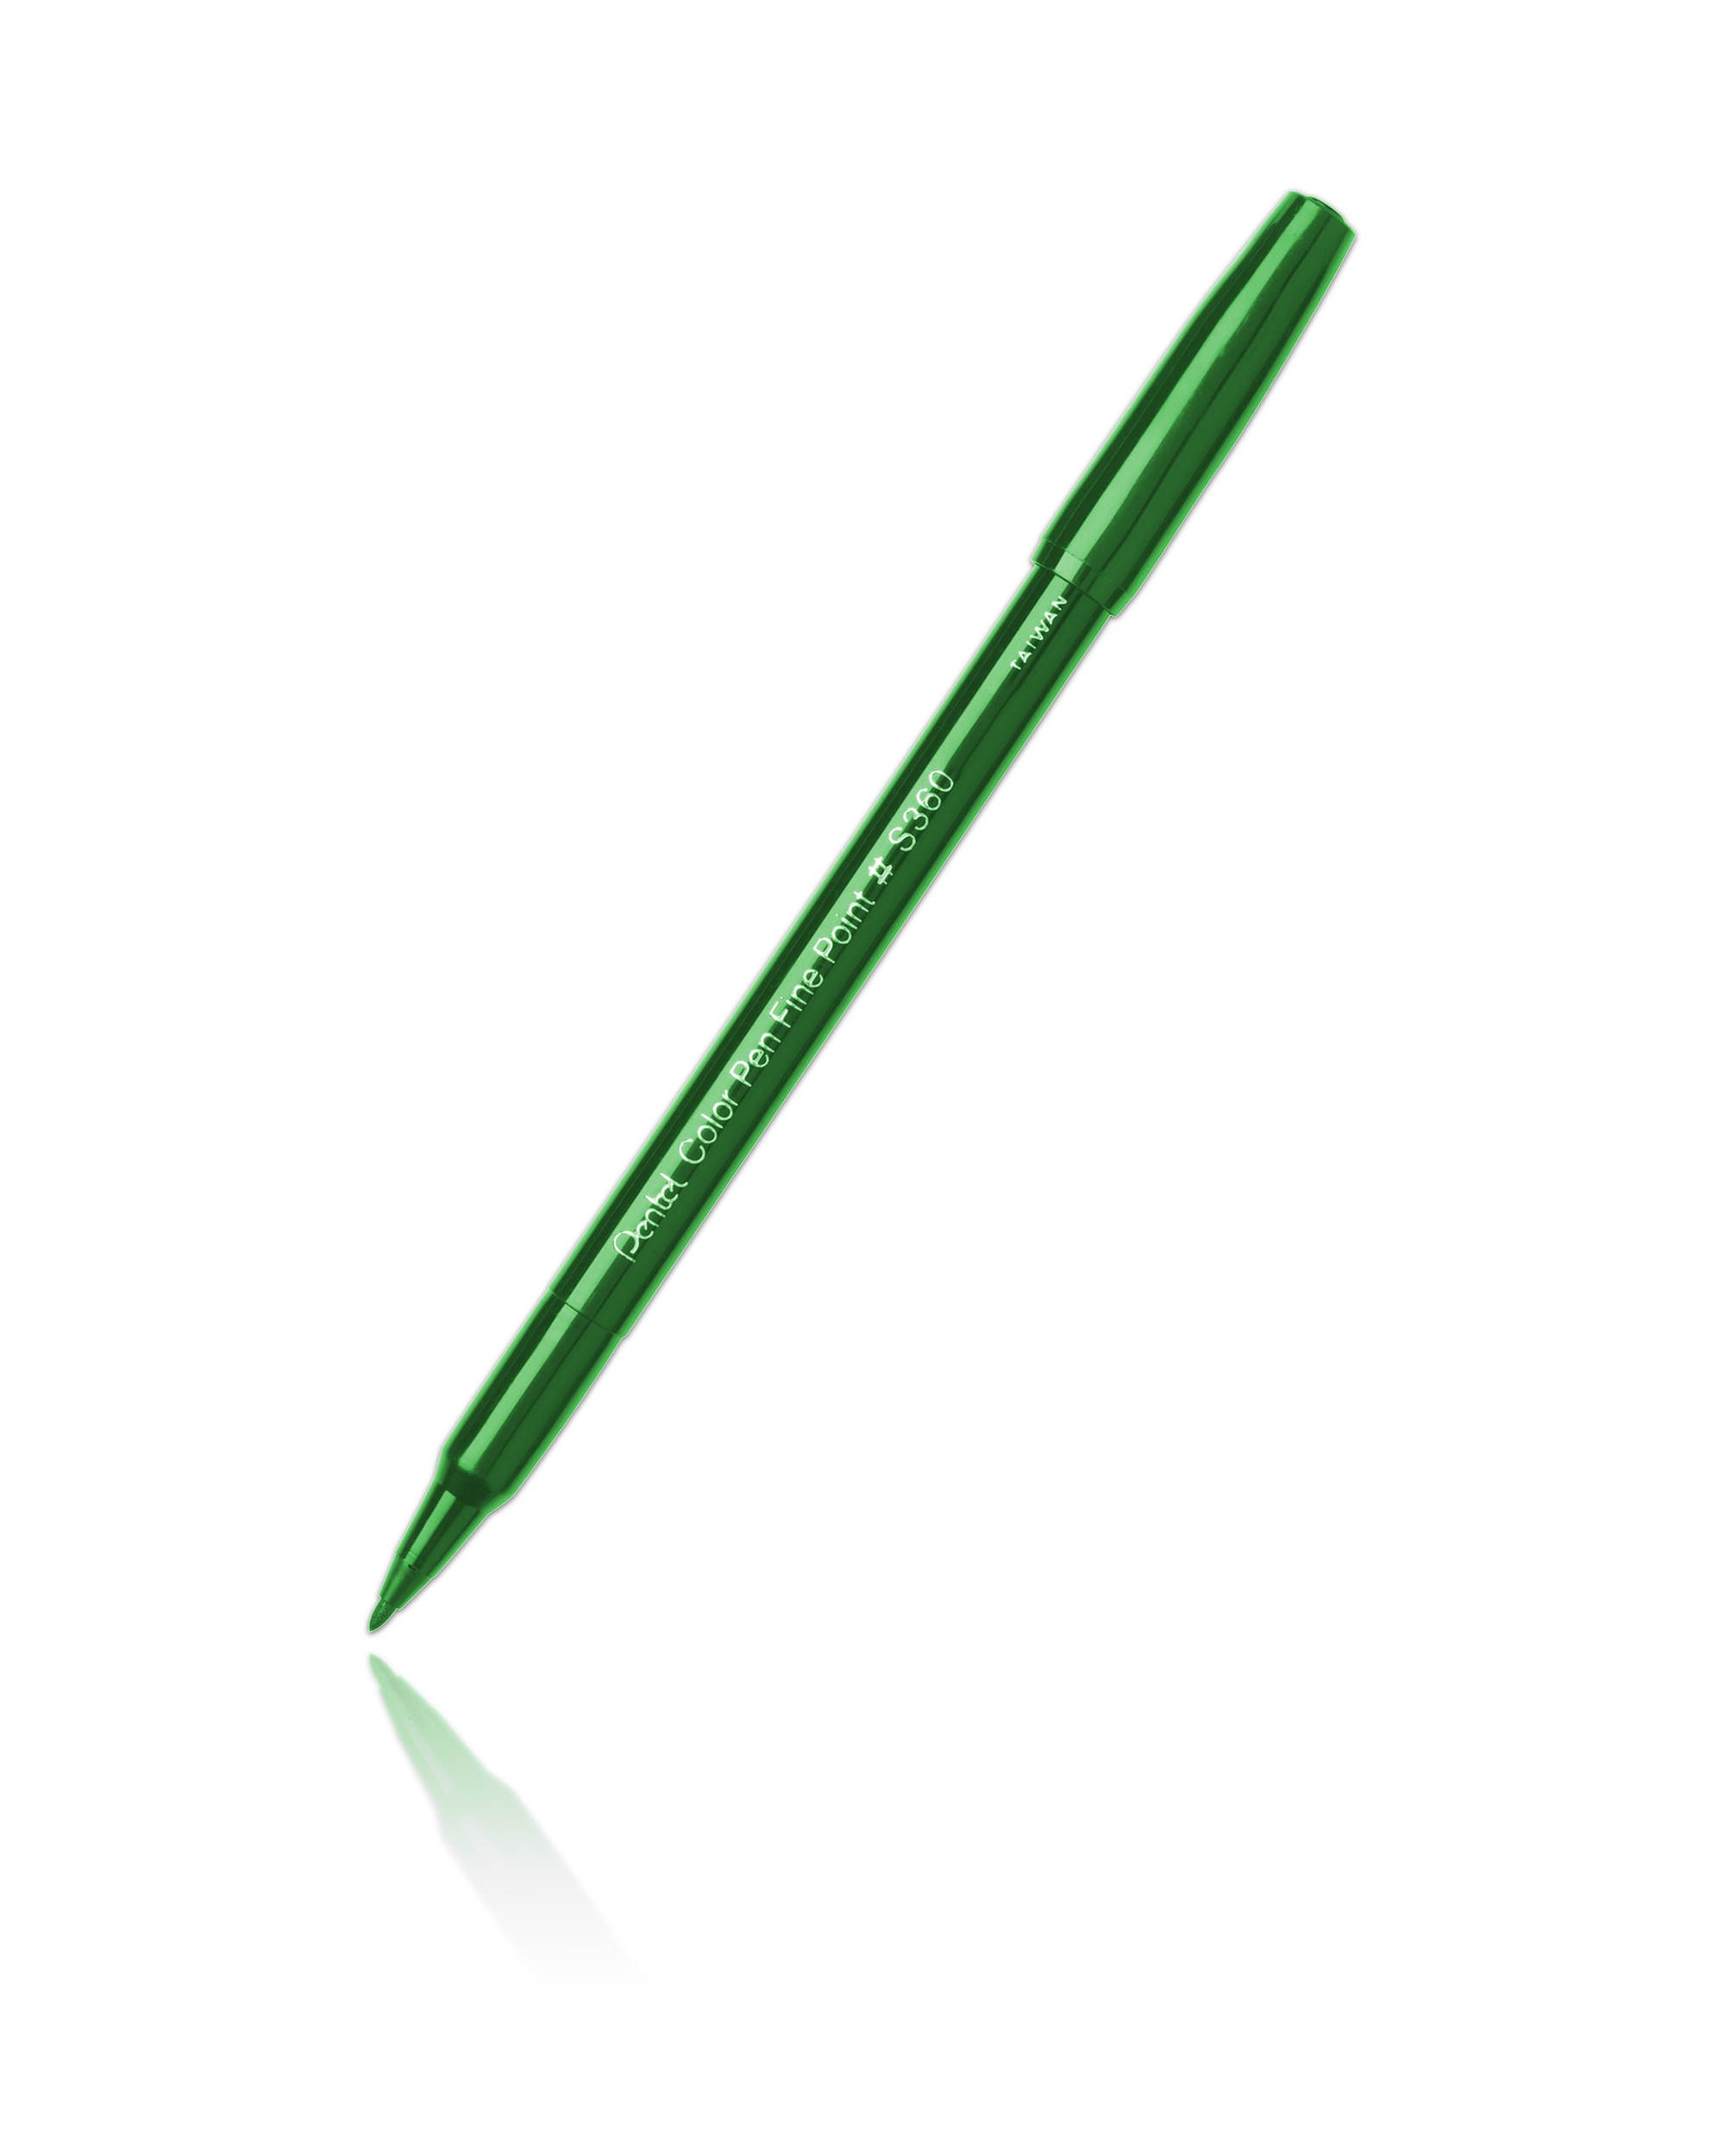 Pentel S360 Color Pen Green-104